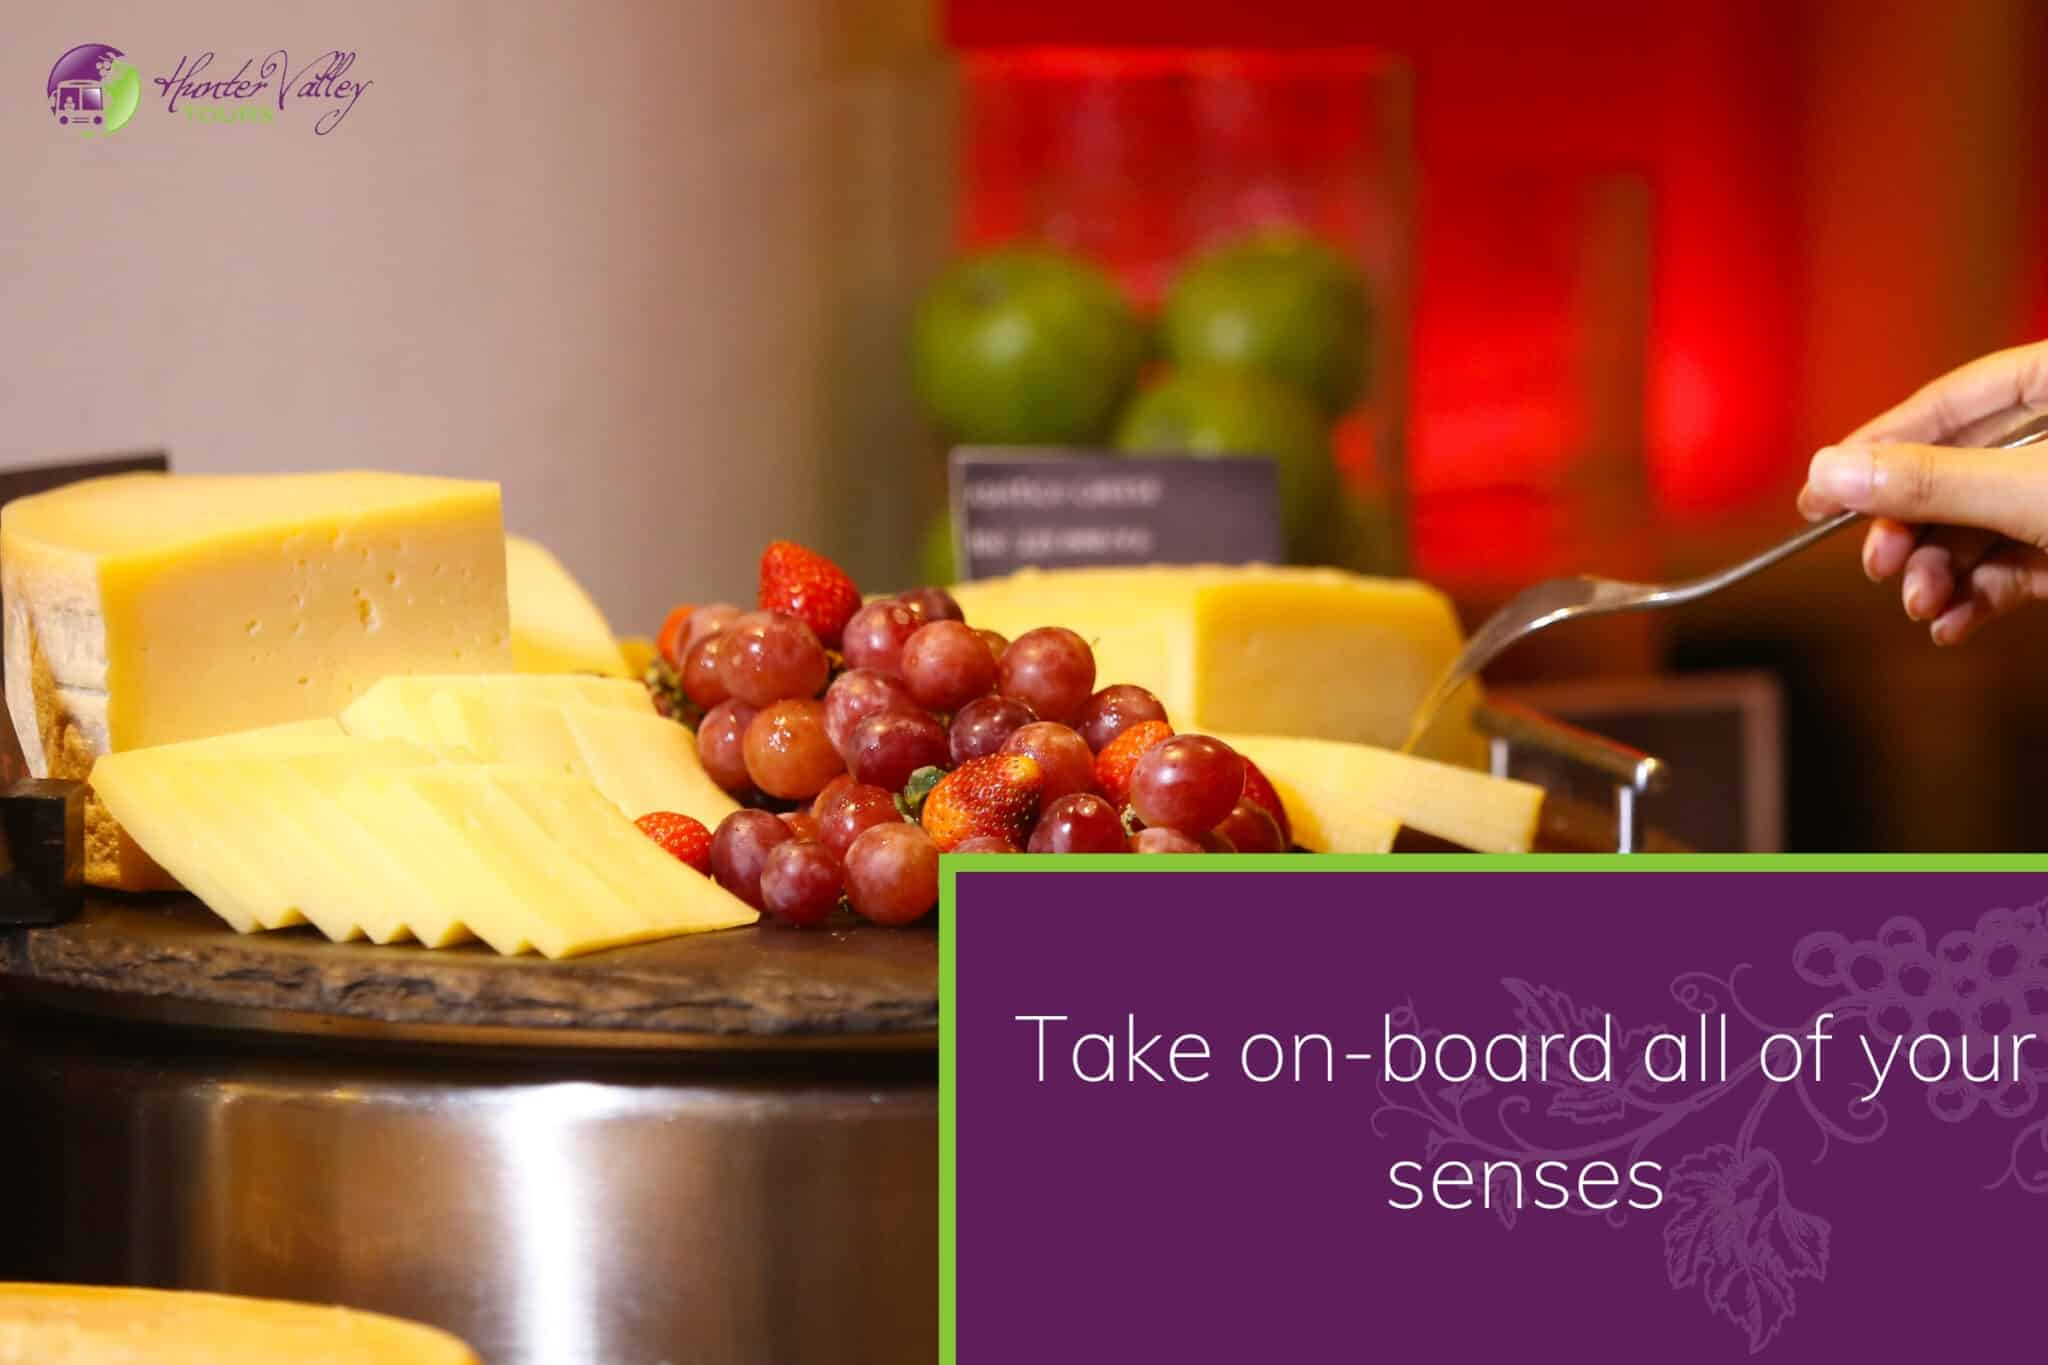 Take on-board all of your senses